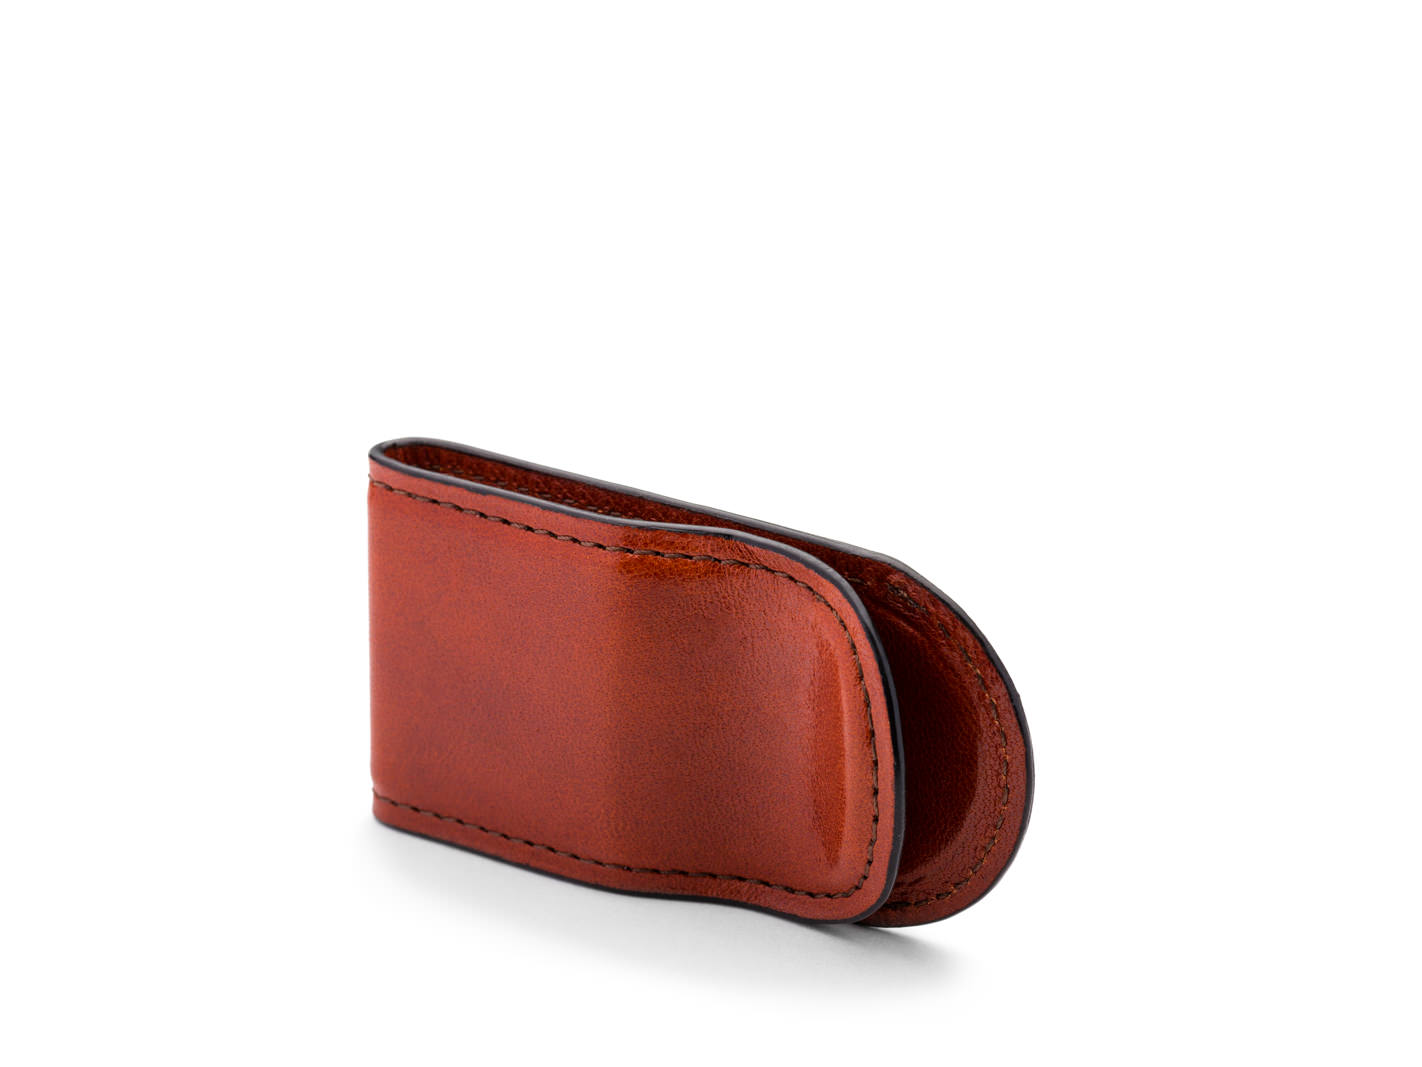 Leather Covered Money Clip -32 Cognac - 32 Cognac